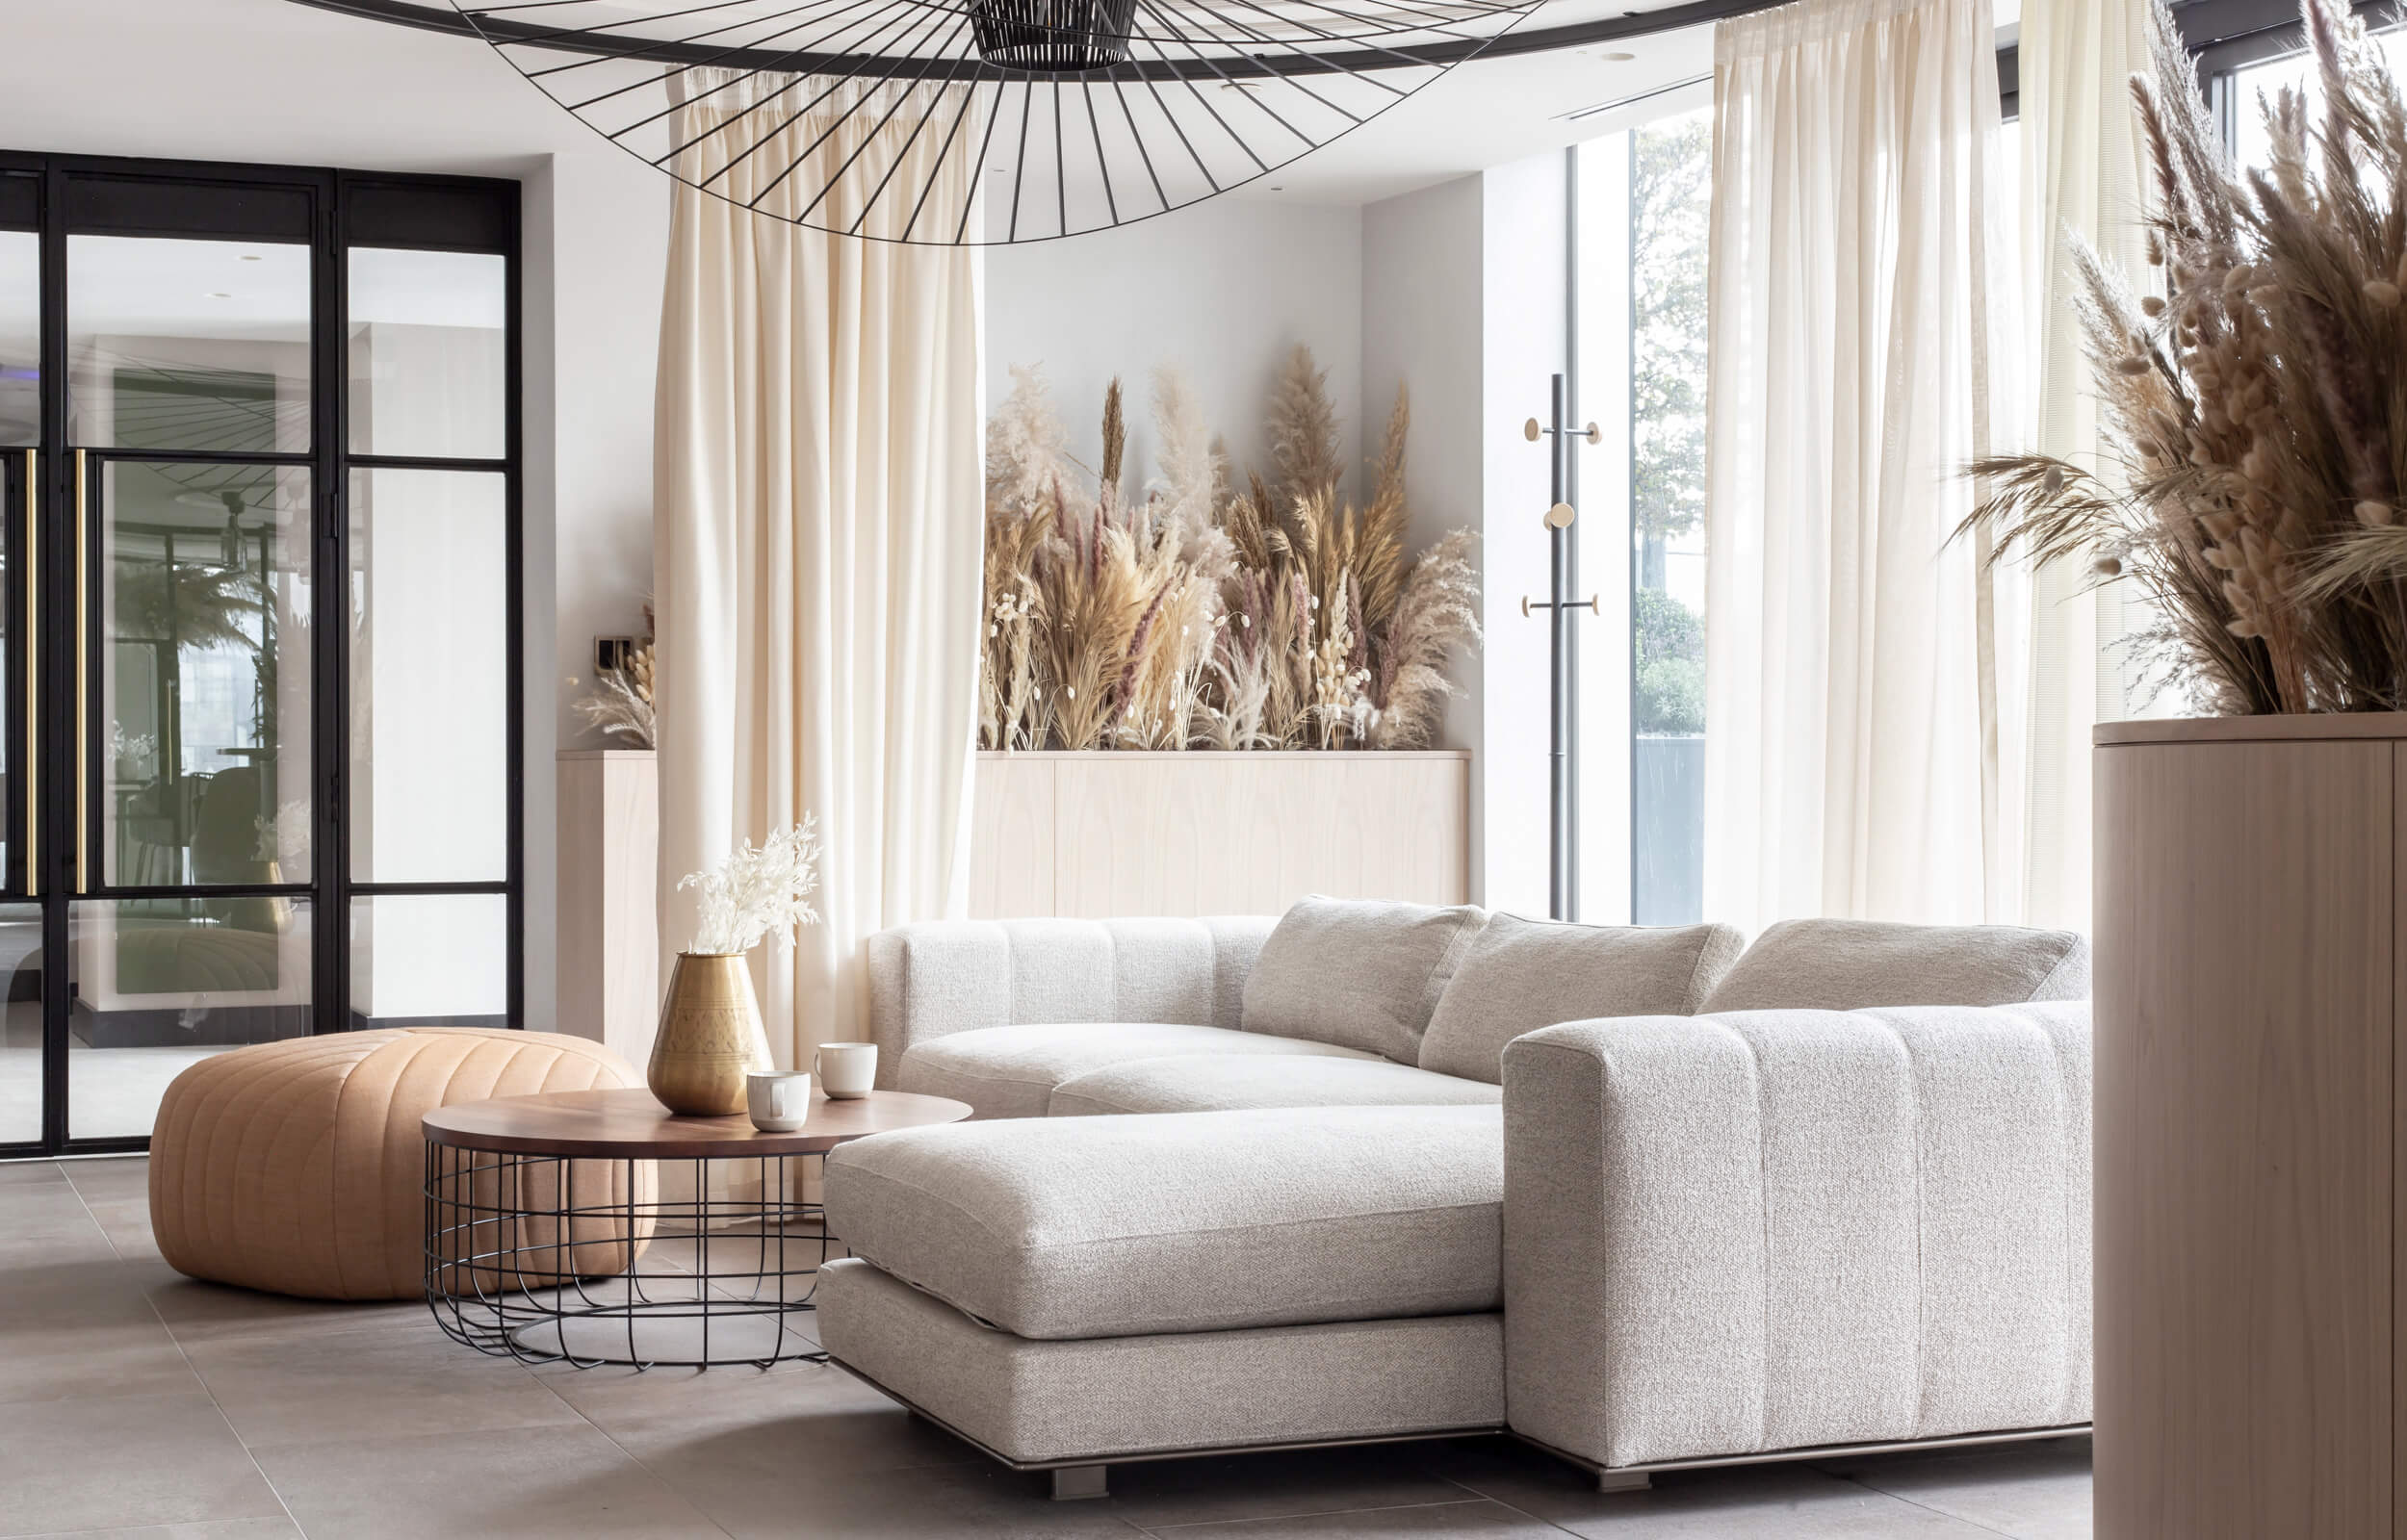 A light grey sofa in a lounge